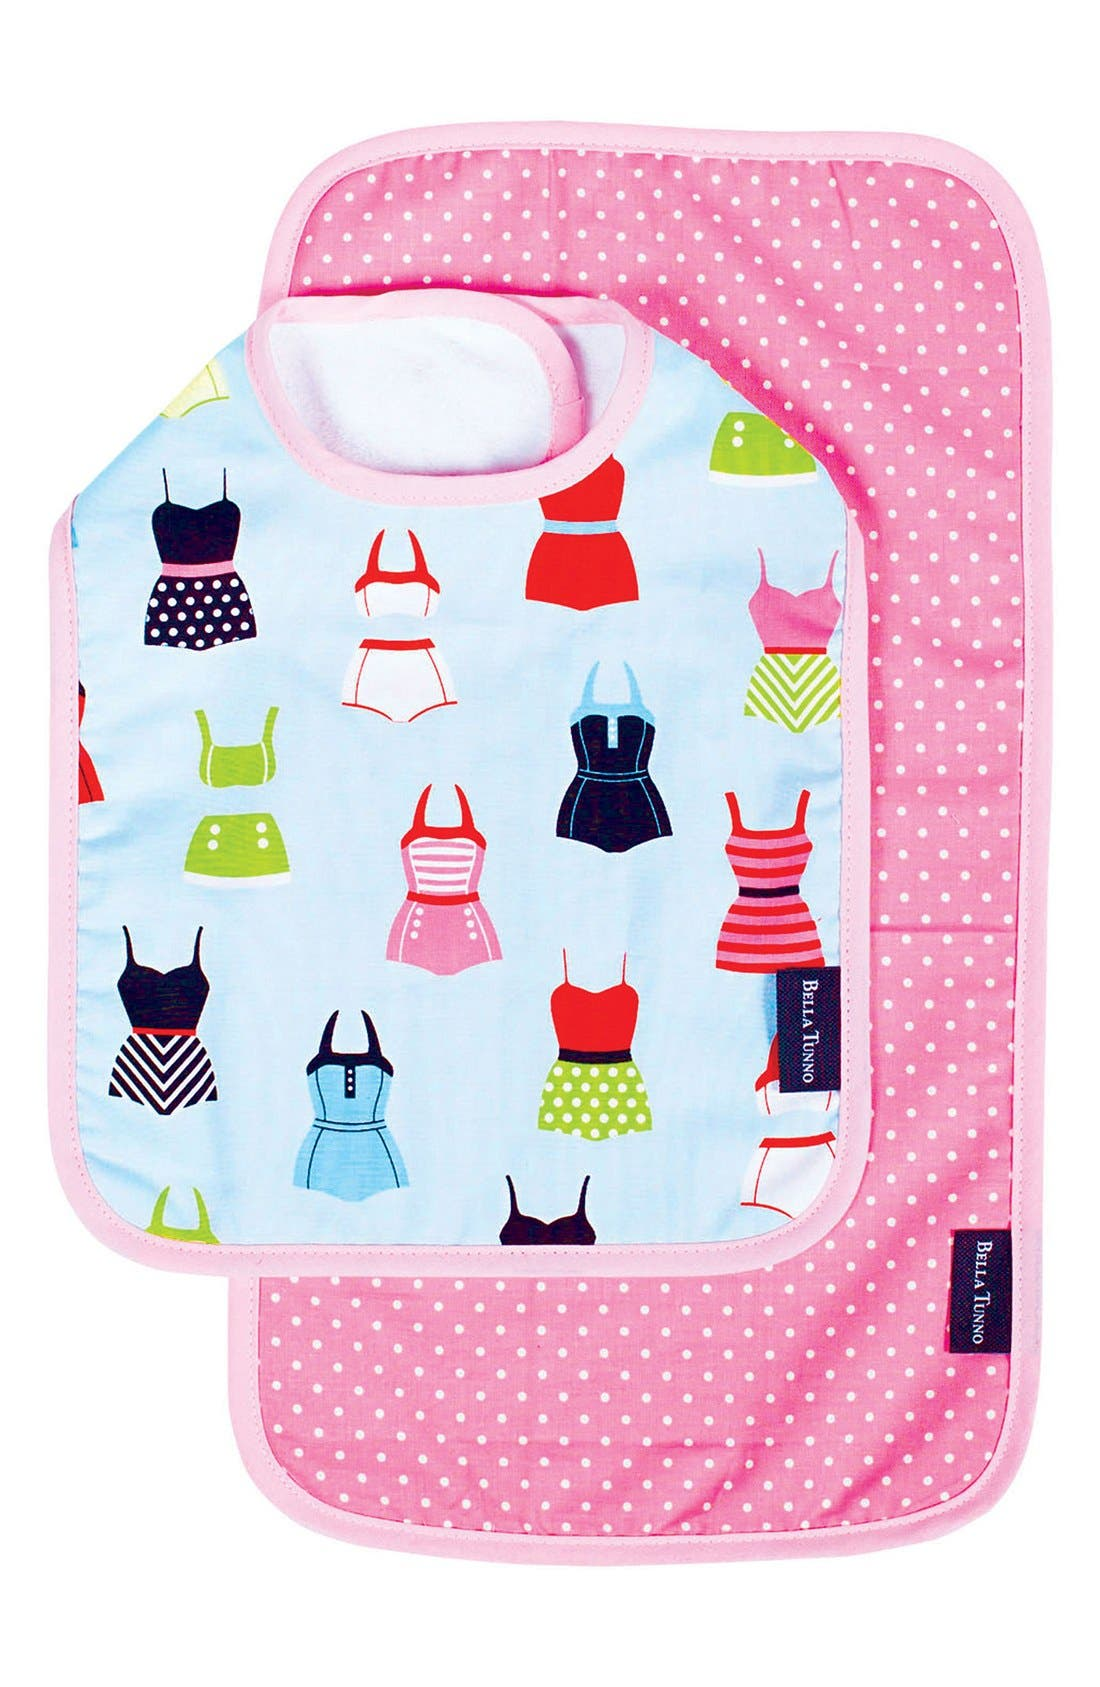 BELLA TUNNO Bib & Burpie Cloth Set